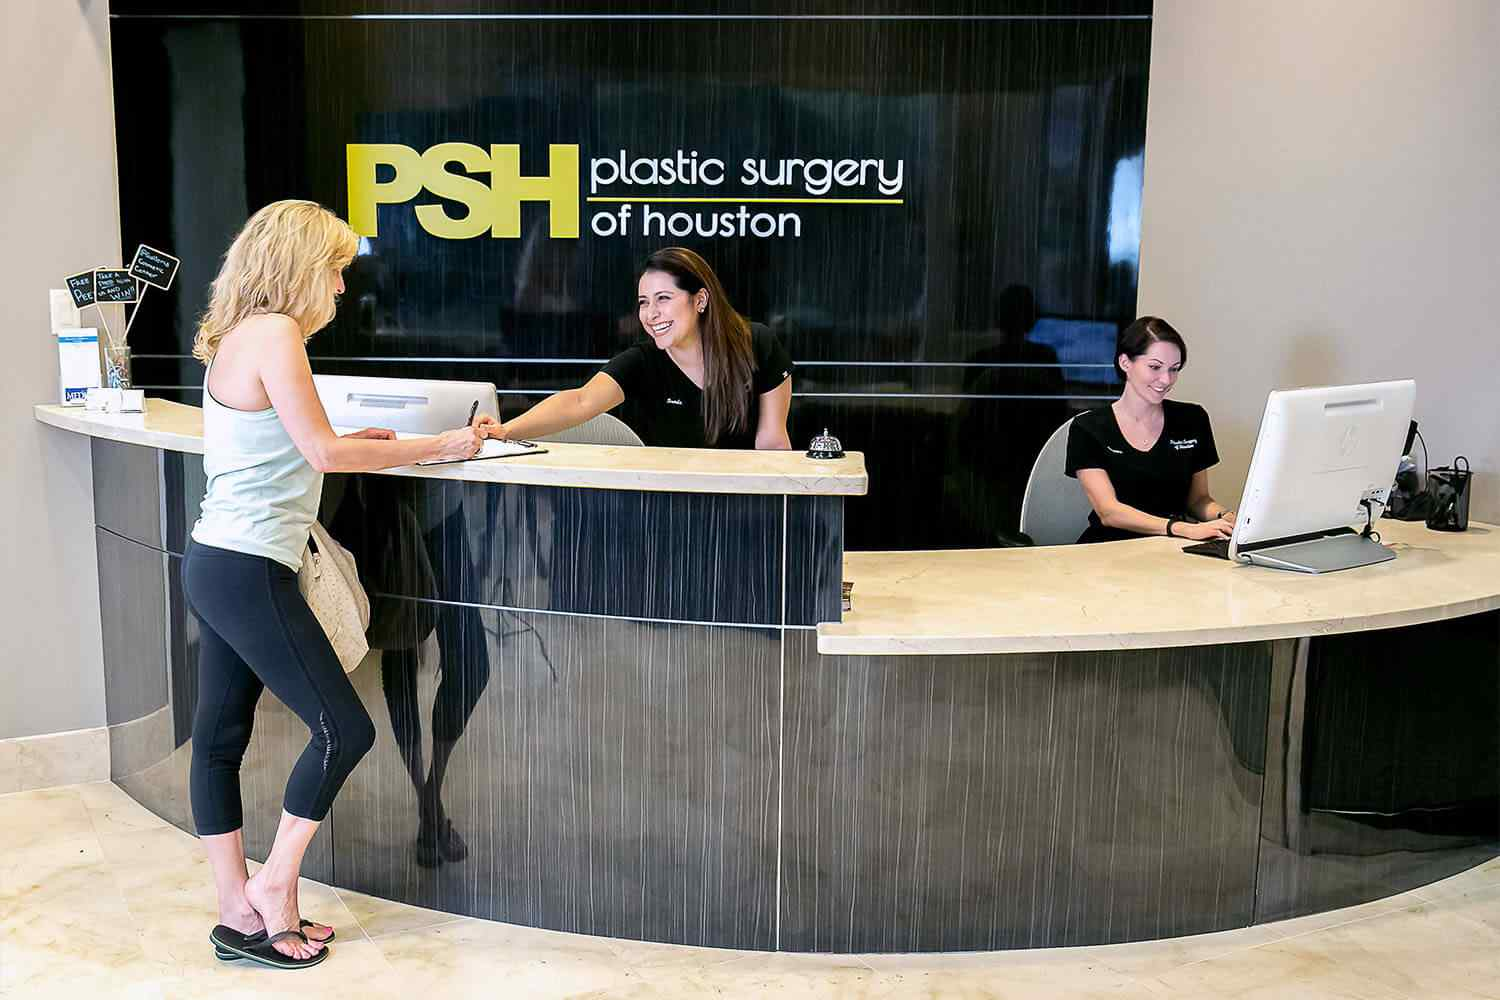 Plastic Surgery of Houston specializes in cosmetic and reconstructive procedures. We helped re-launch their website with fresh new photography, before and afters, reviews and credentials.